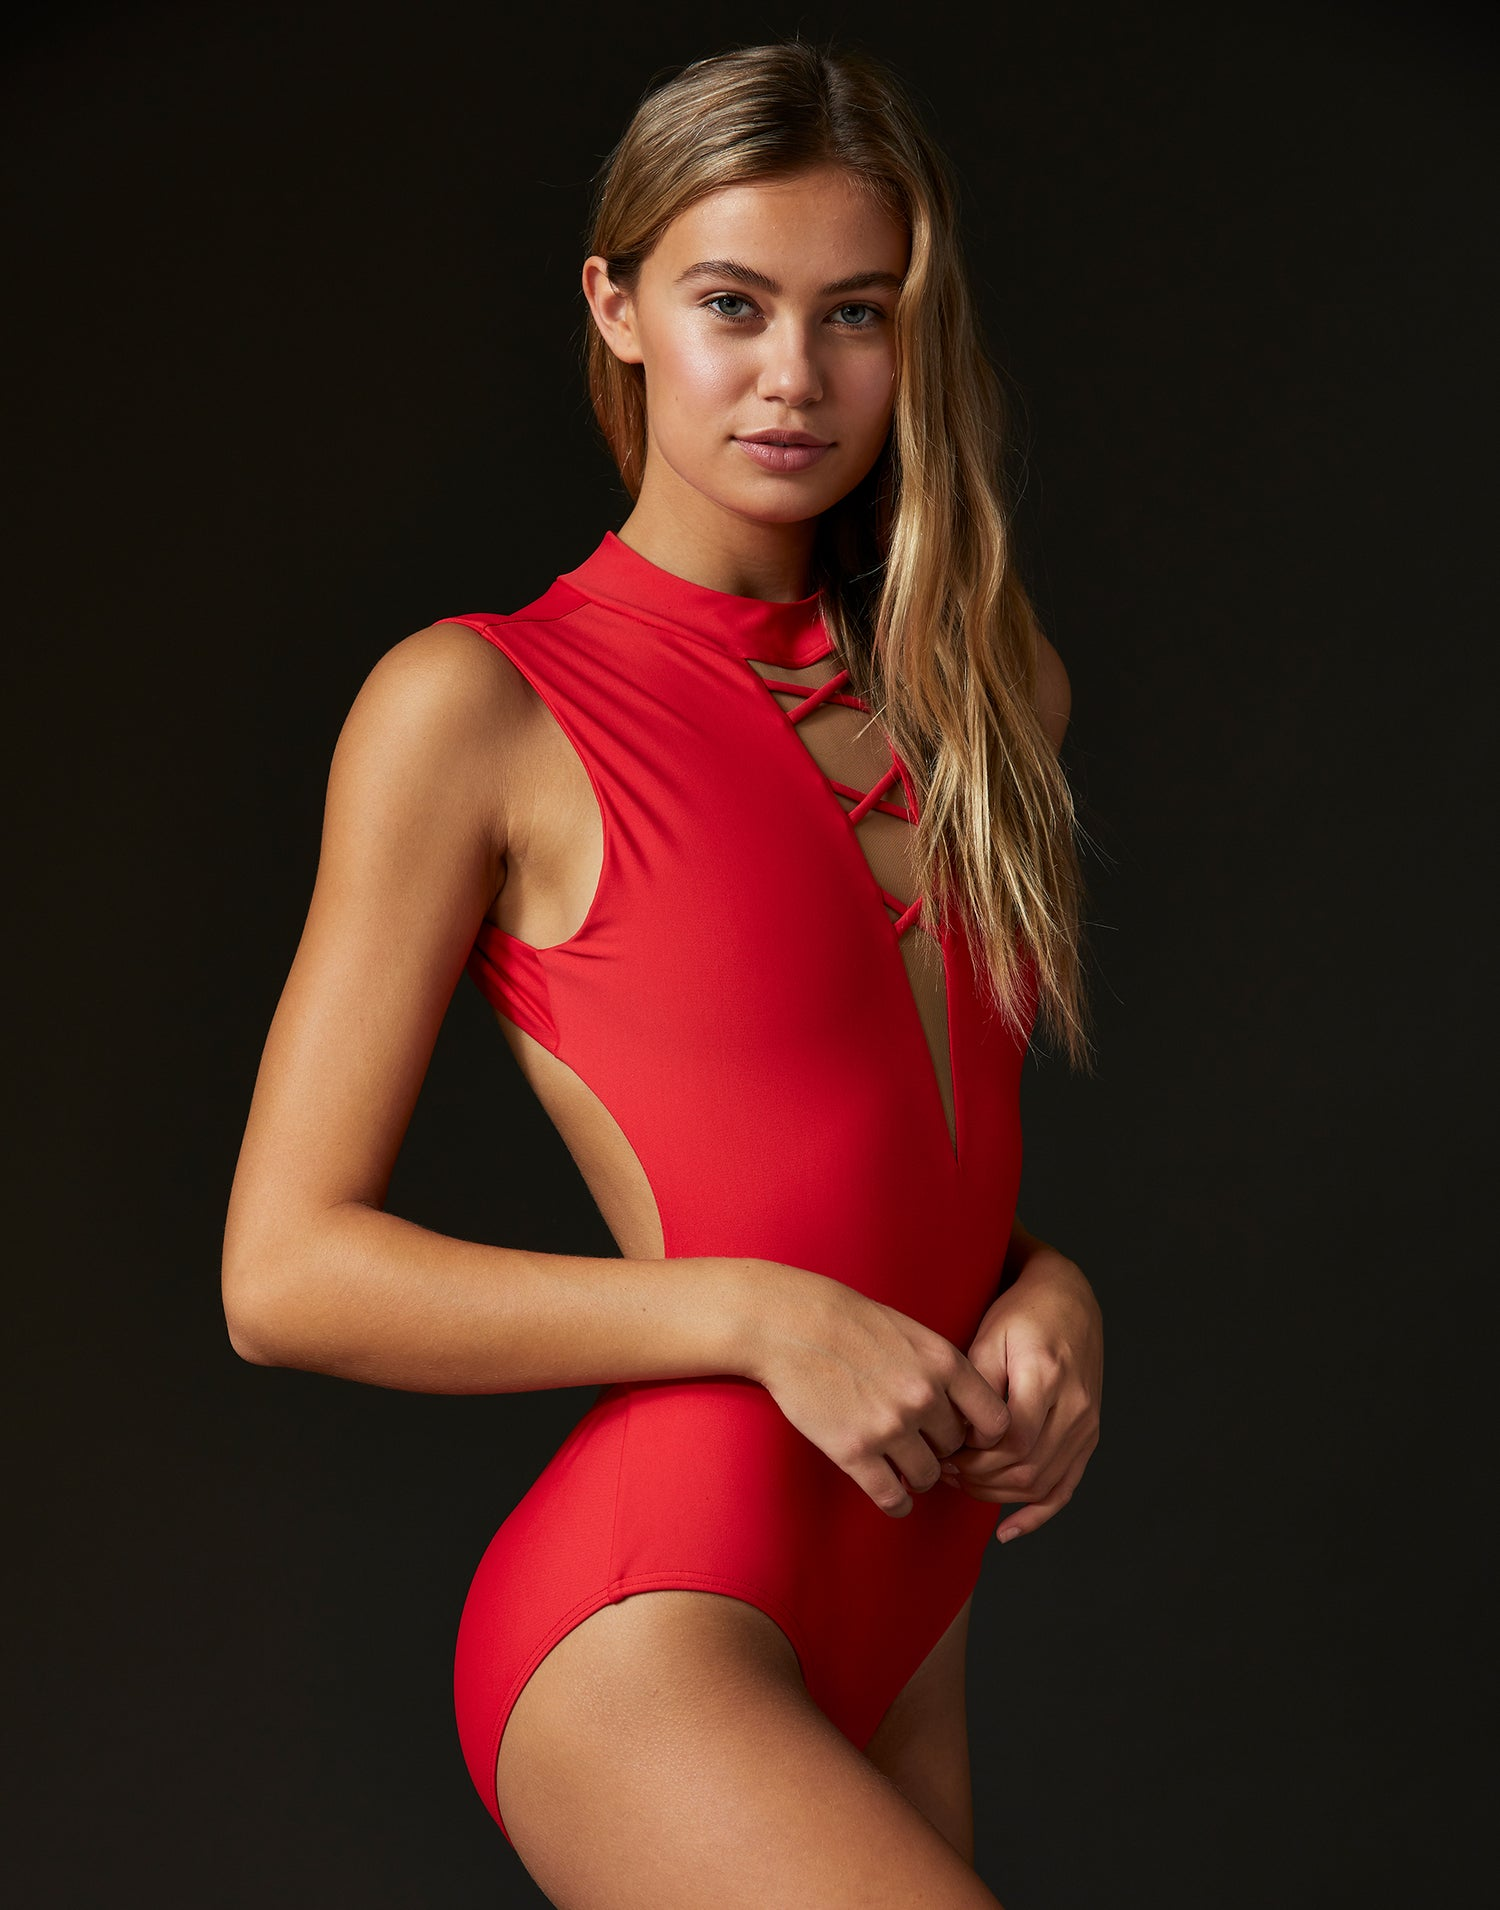 Adult Taylor Leotard with Lace Up Detail in Red - side view